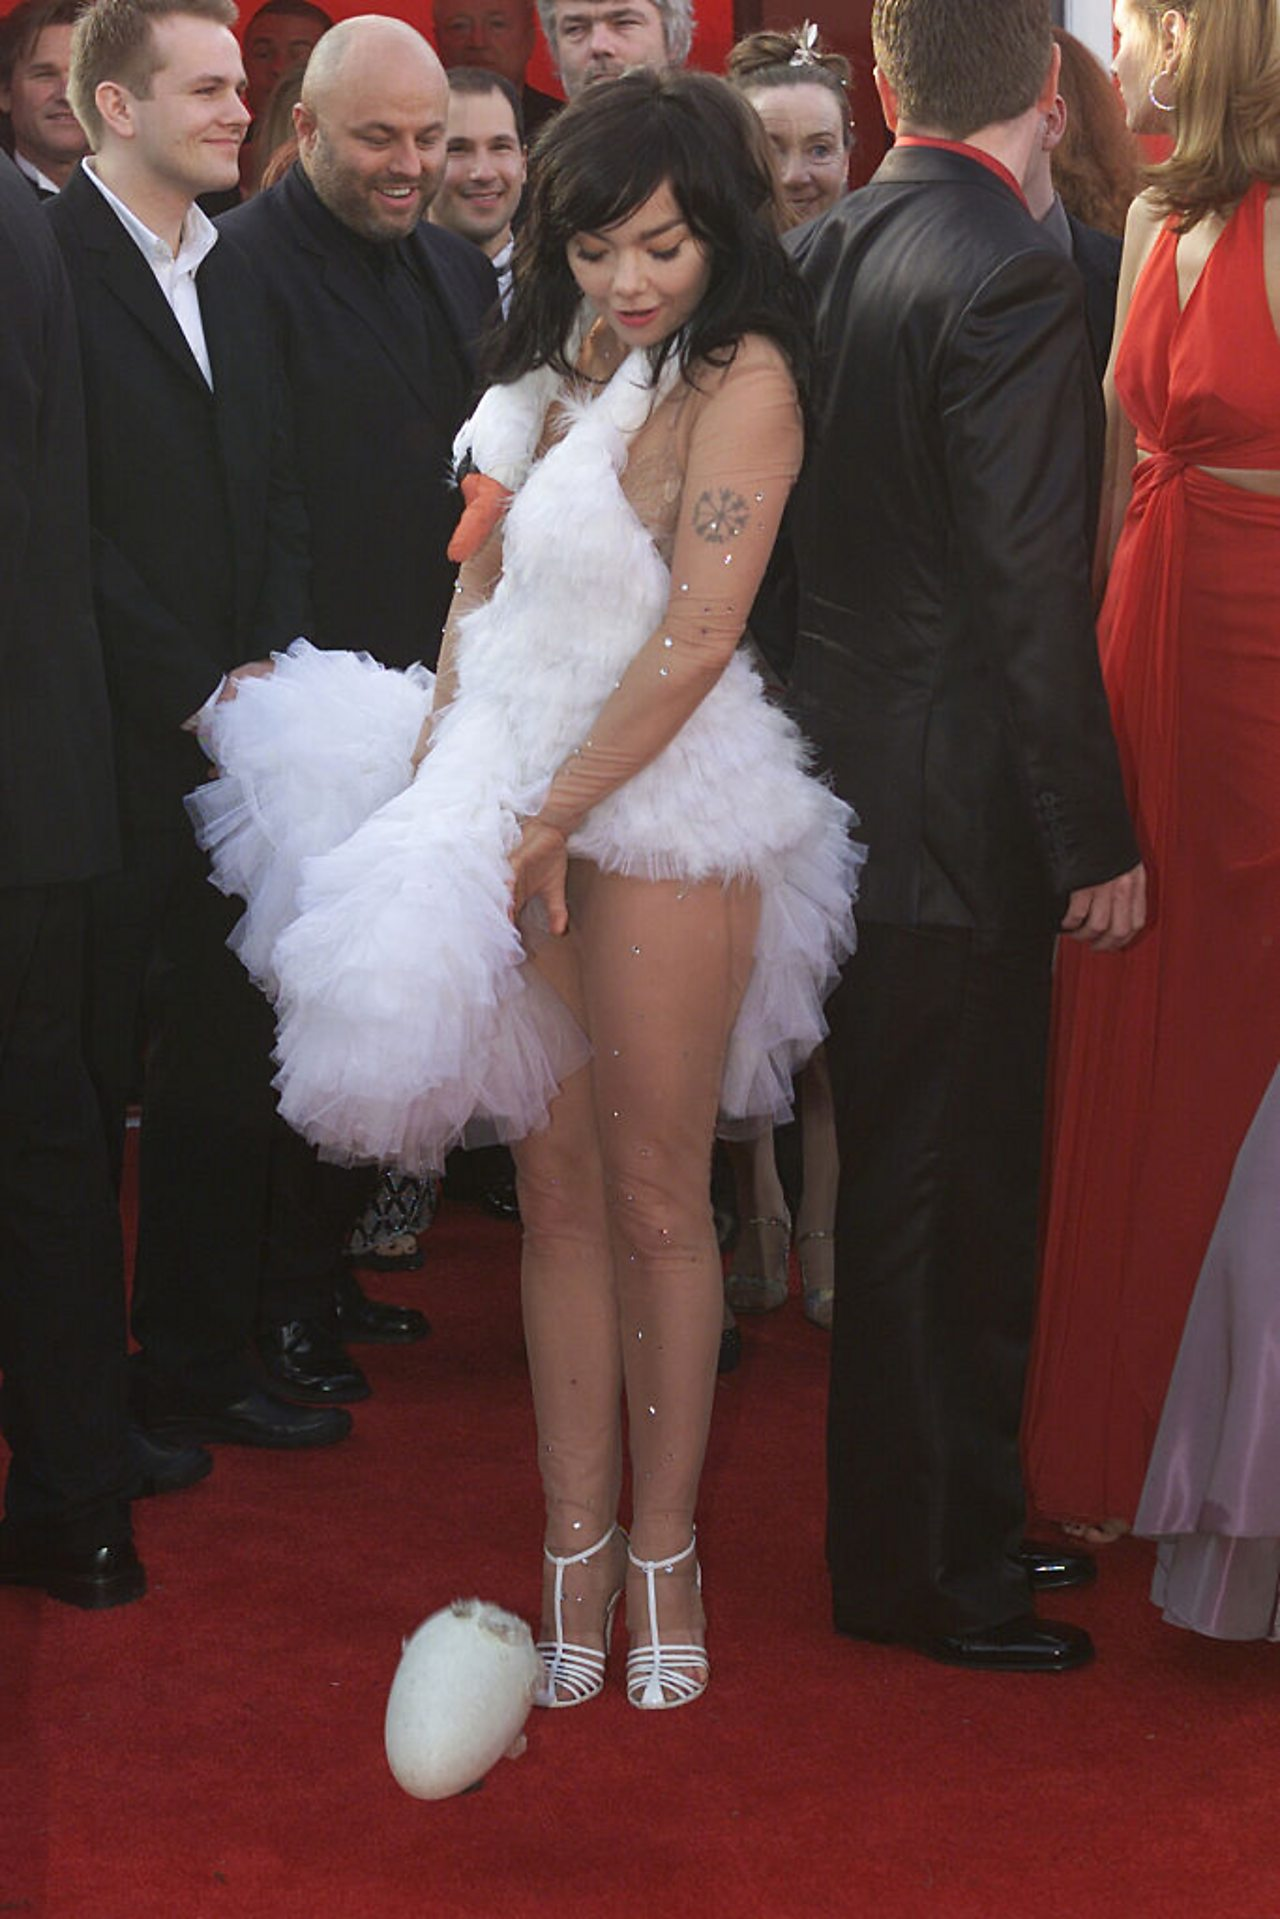 Bjork and the swan dress with egg